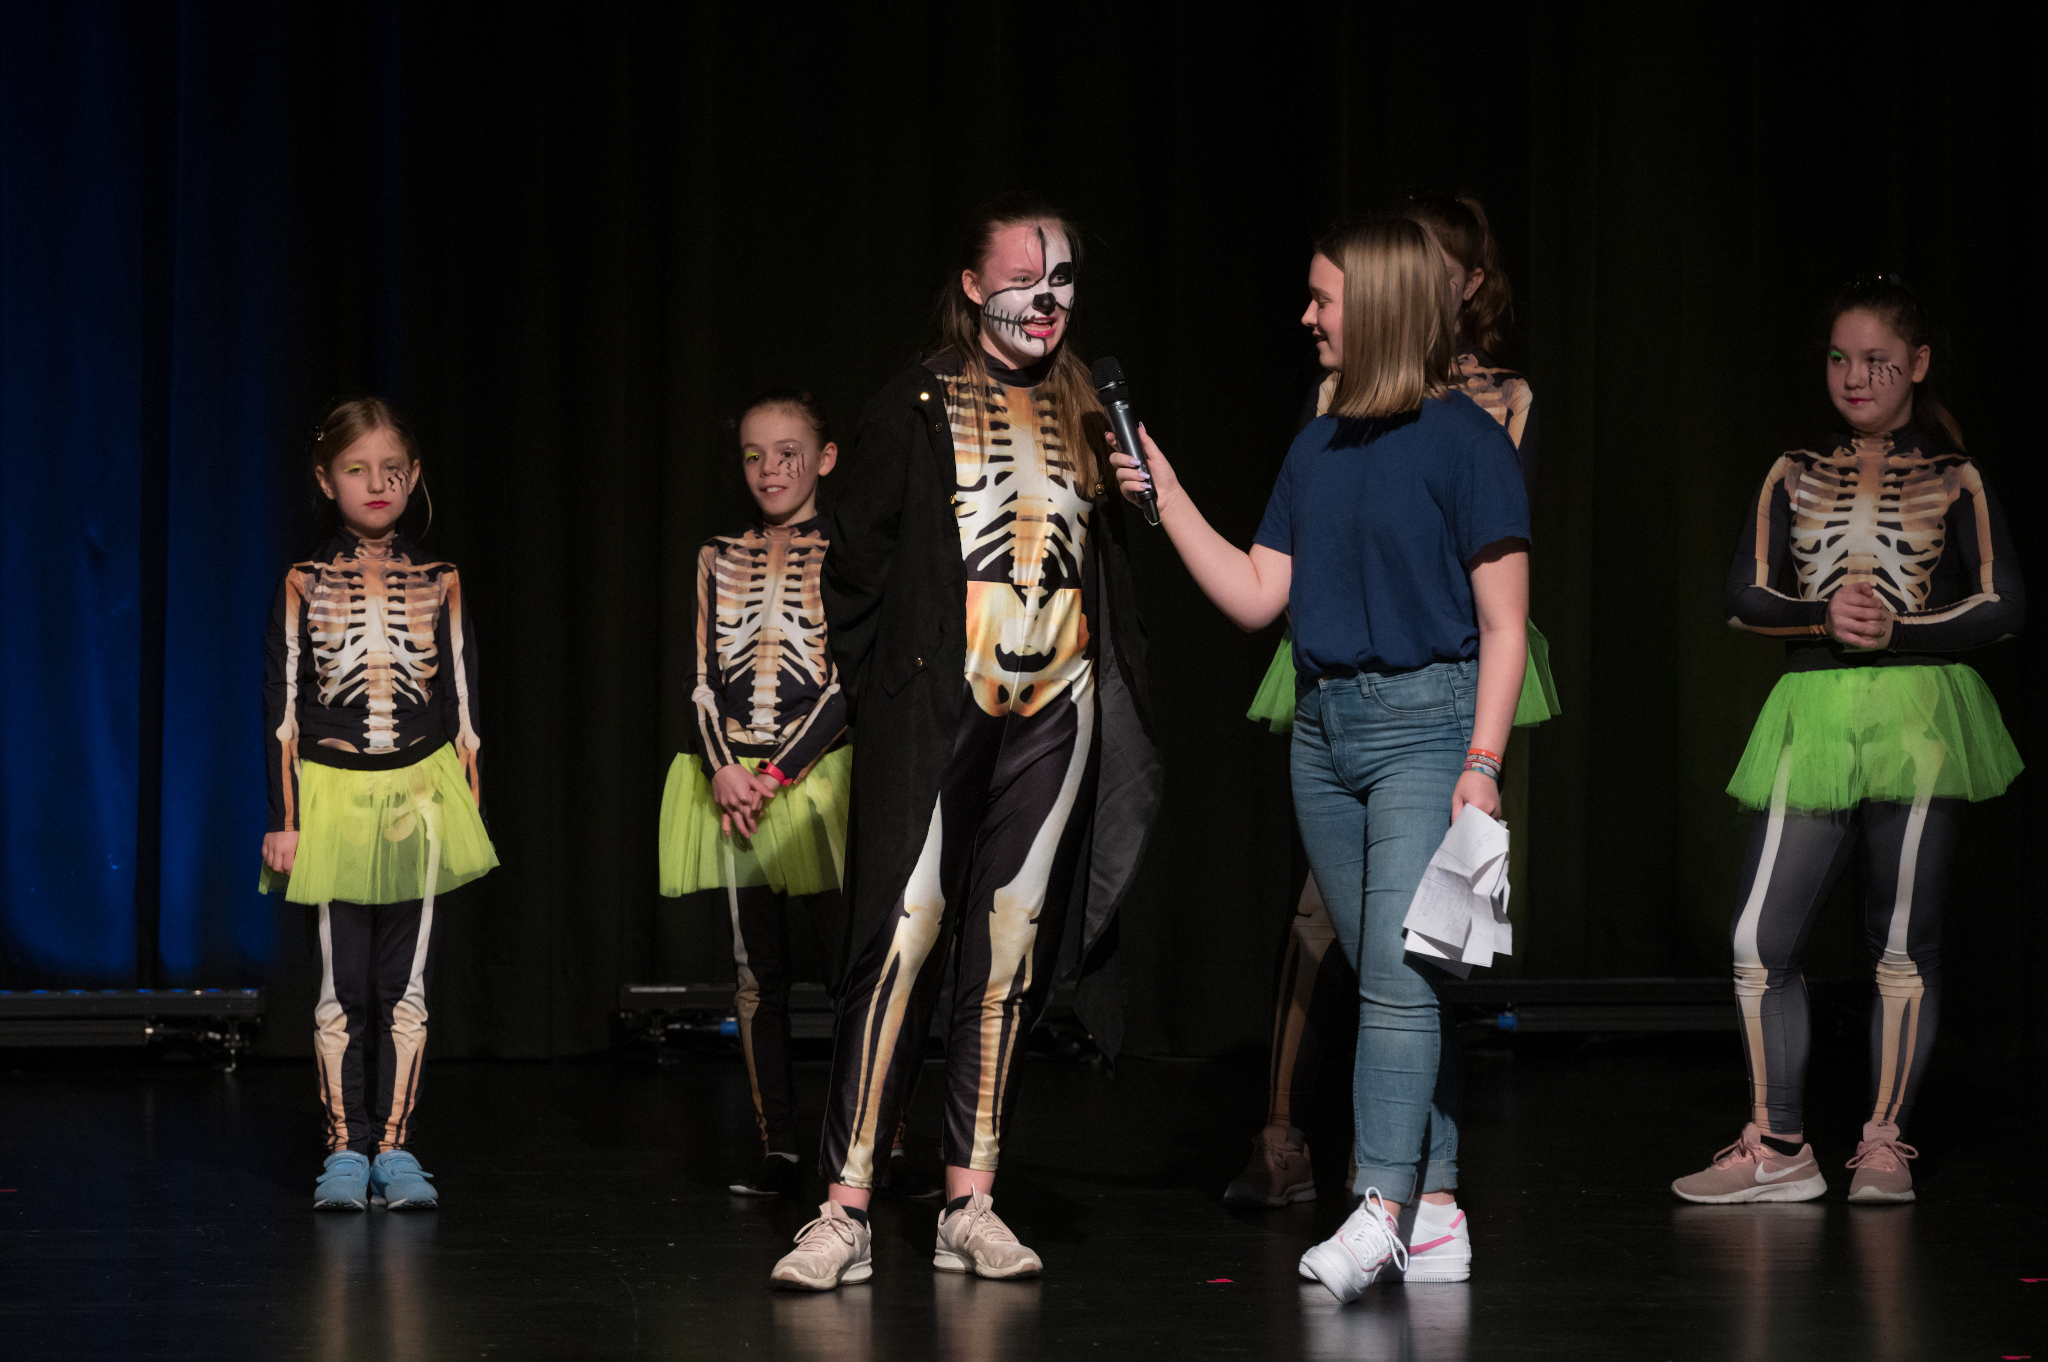 jugendkulturjahr-2020-ratingen-jkj2020-YouthDay-MagicDancers01